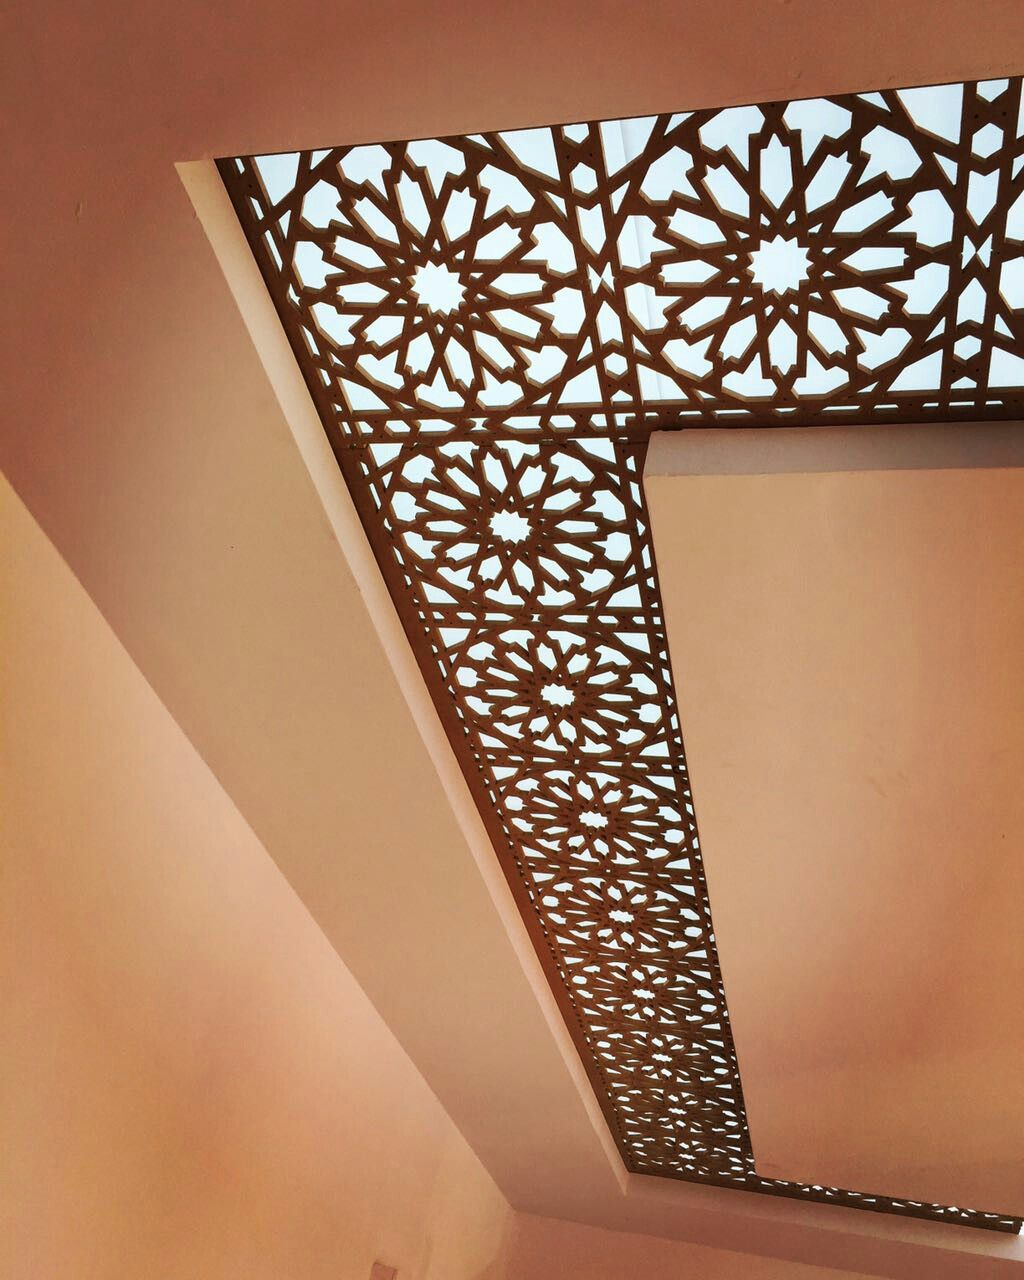 Can have this cnc border with glass in middle | Ceiling ...